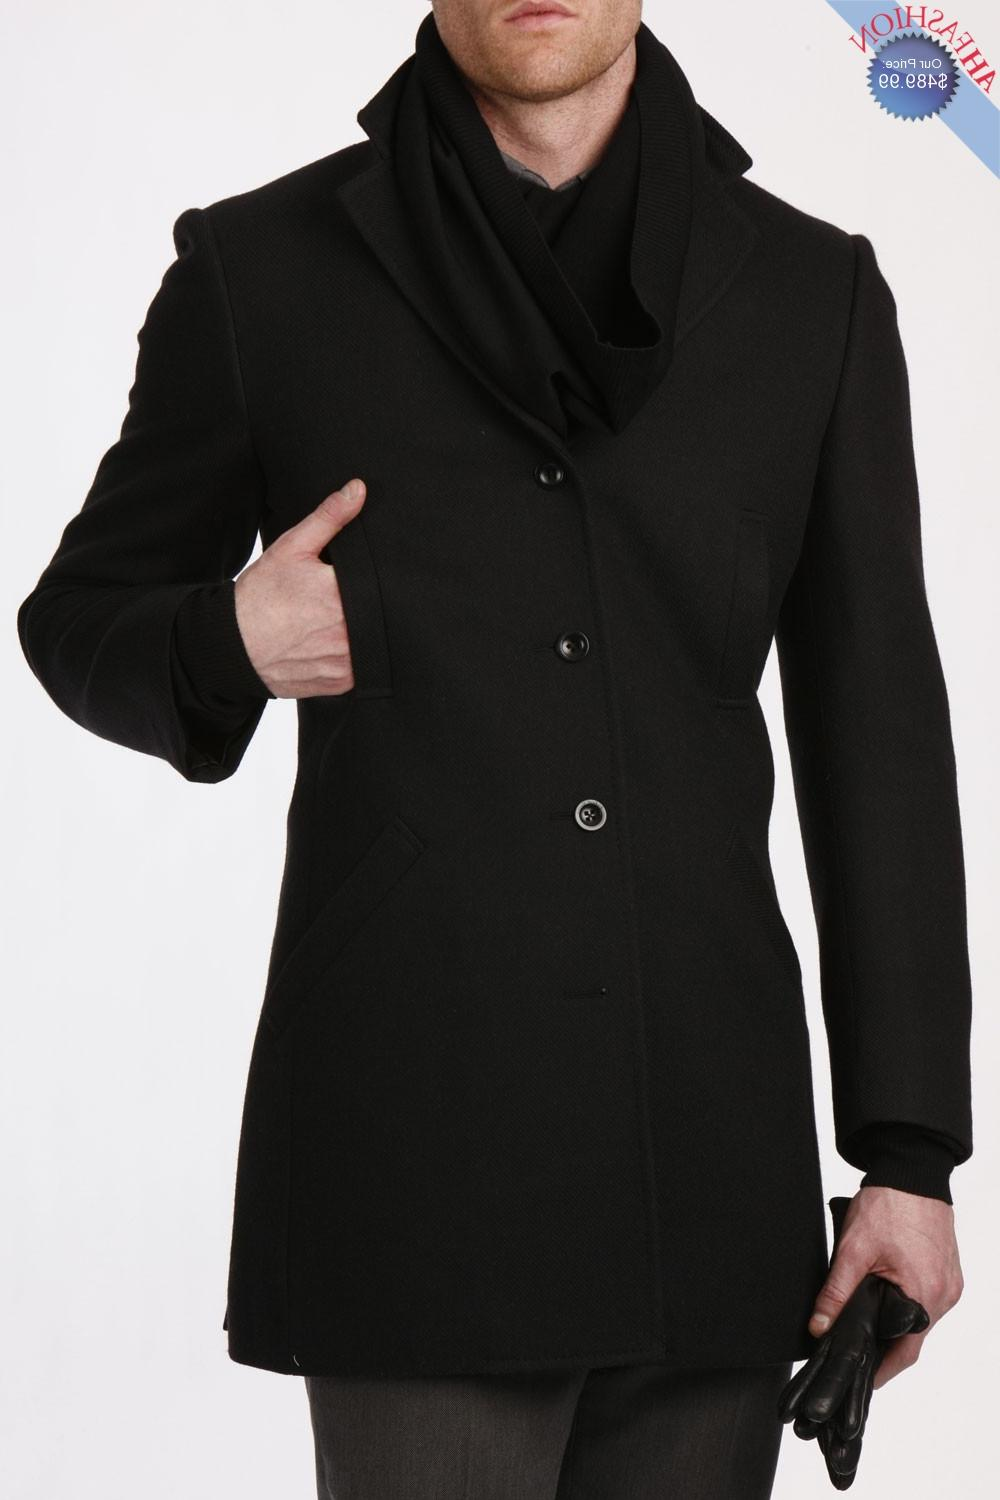 Mens Black Twill Overcoat 100